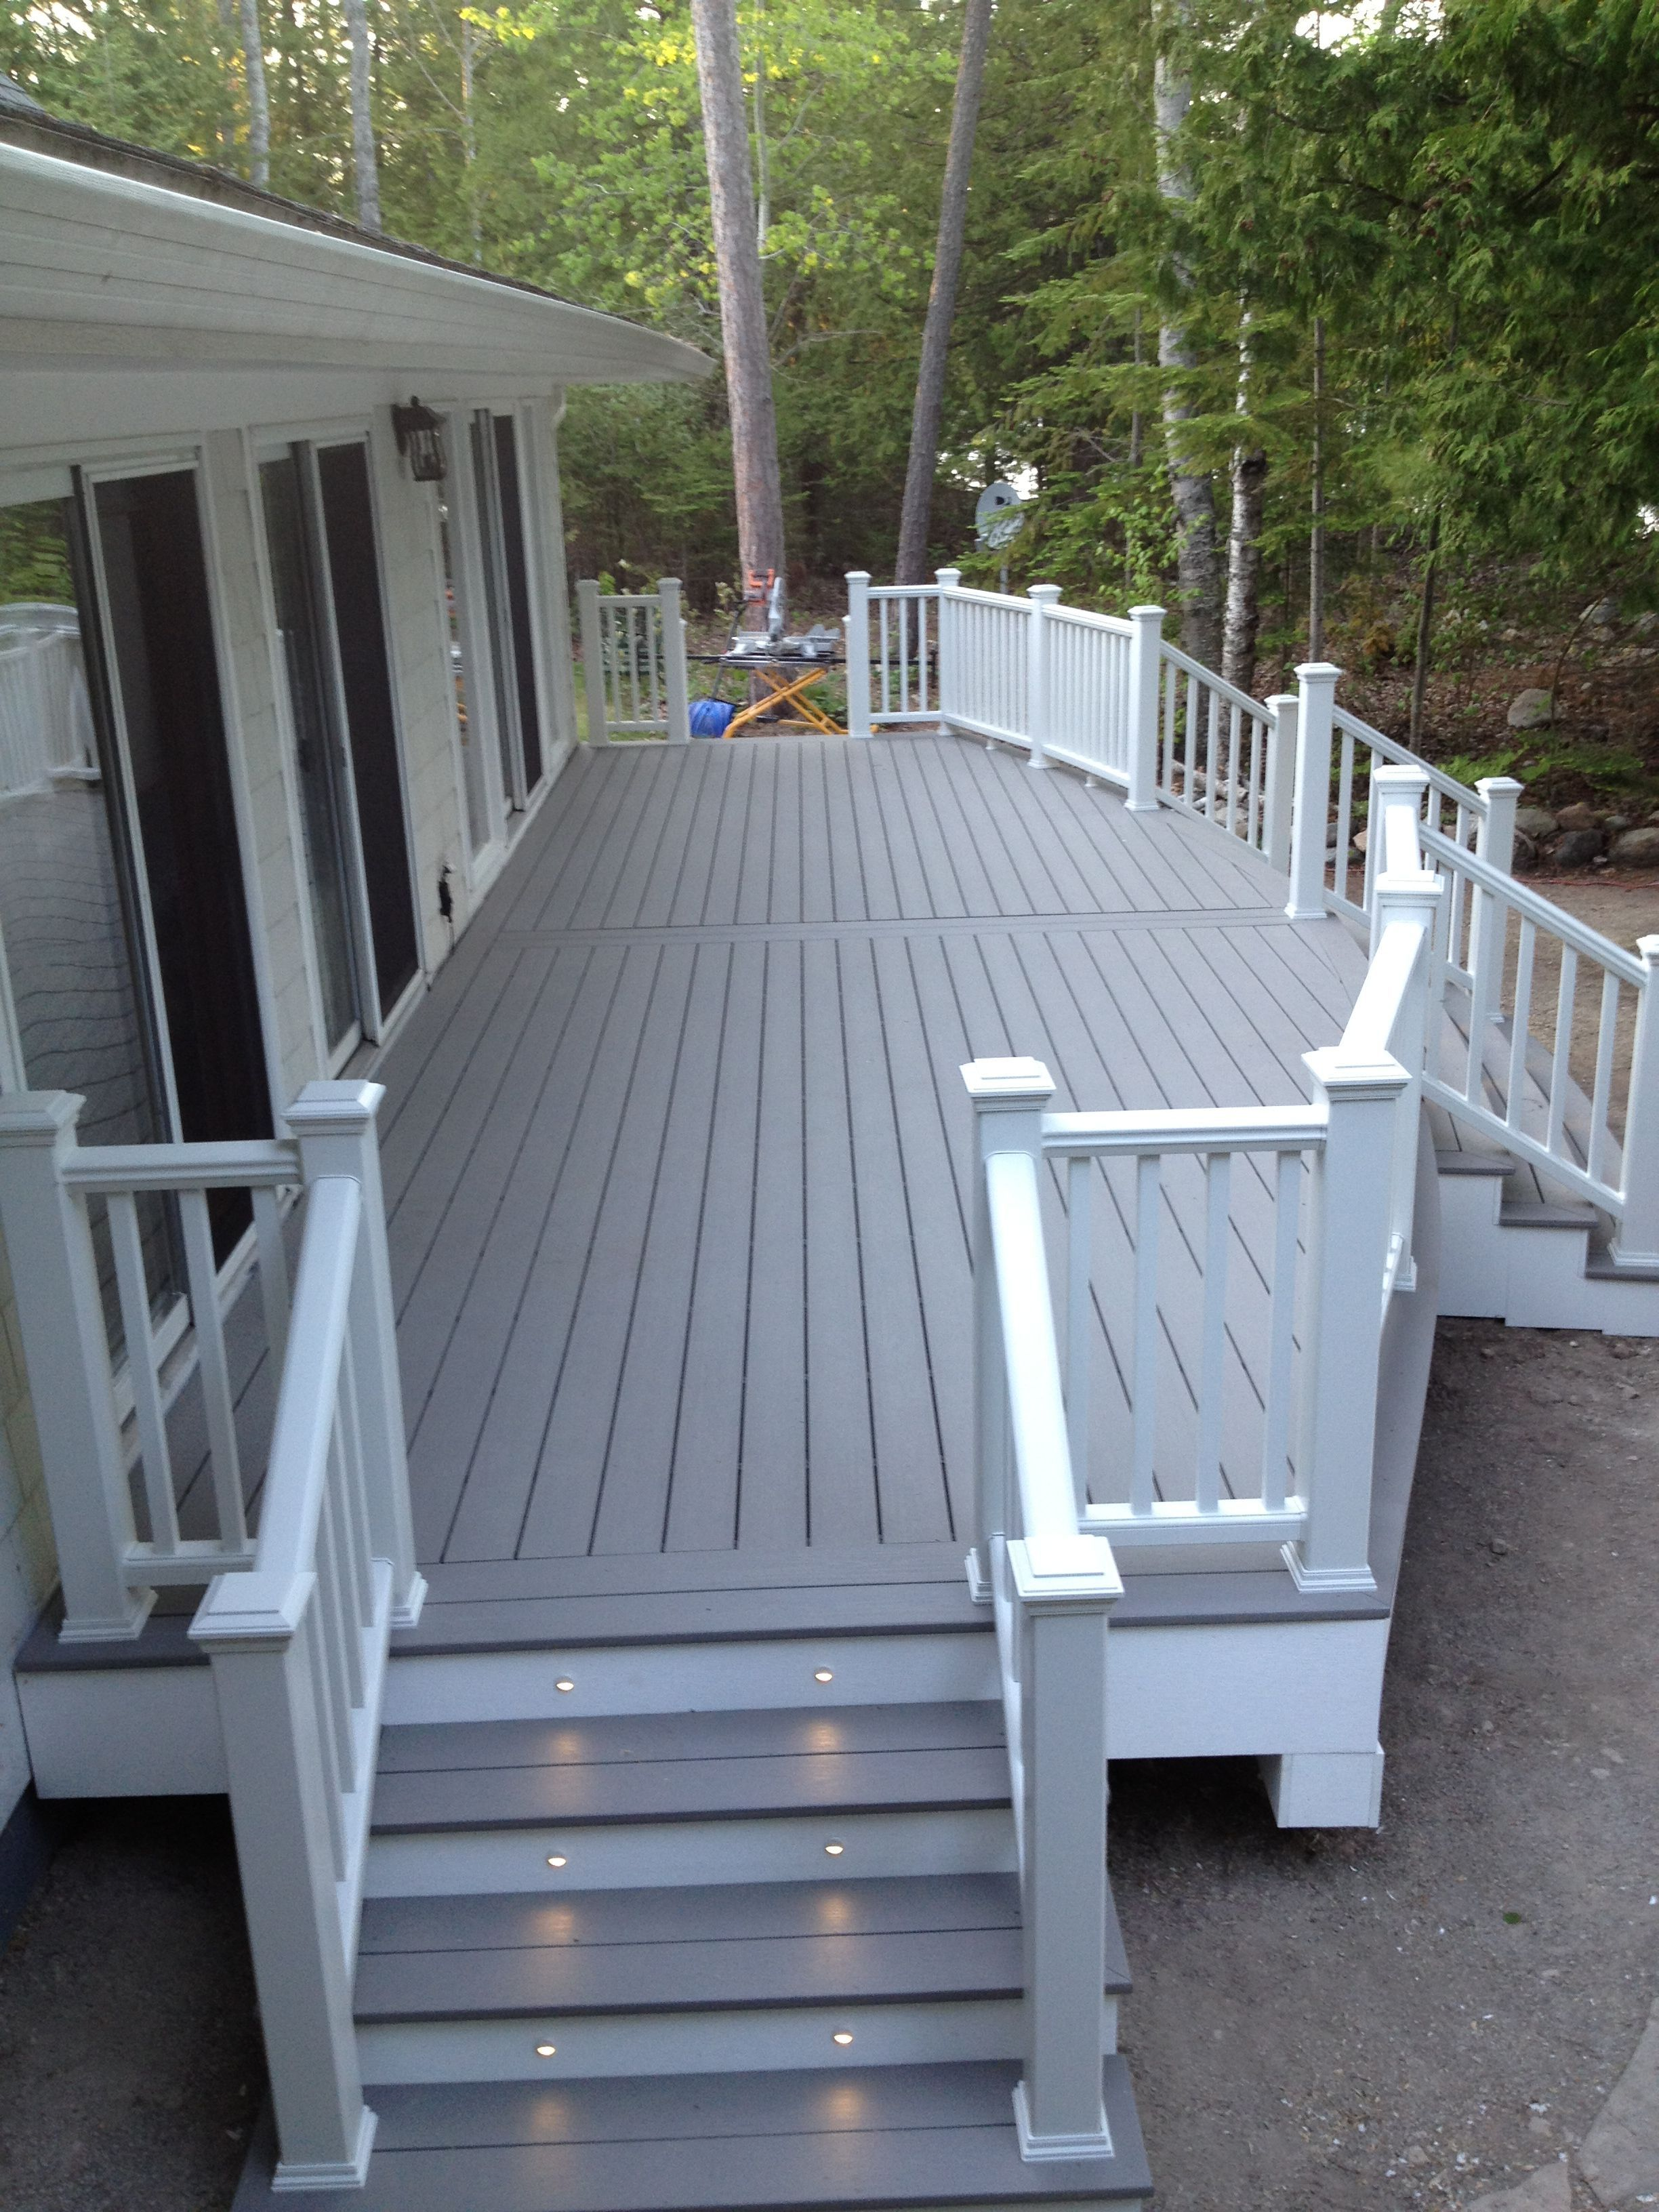 Pvc Deck Www Renewitdecks Com Petoskey Mi Decks Northern Michigan Deckconstruction Met Afbeeldingen Achtertuin Vuurplaatsen Pergola S